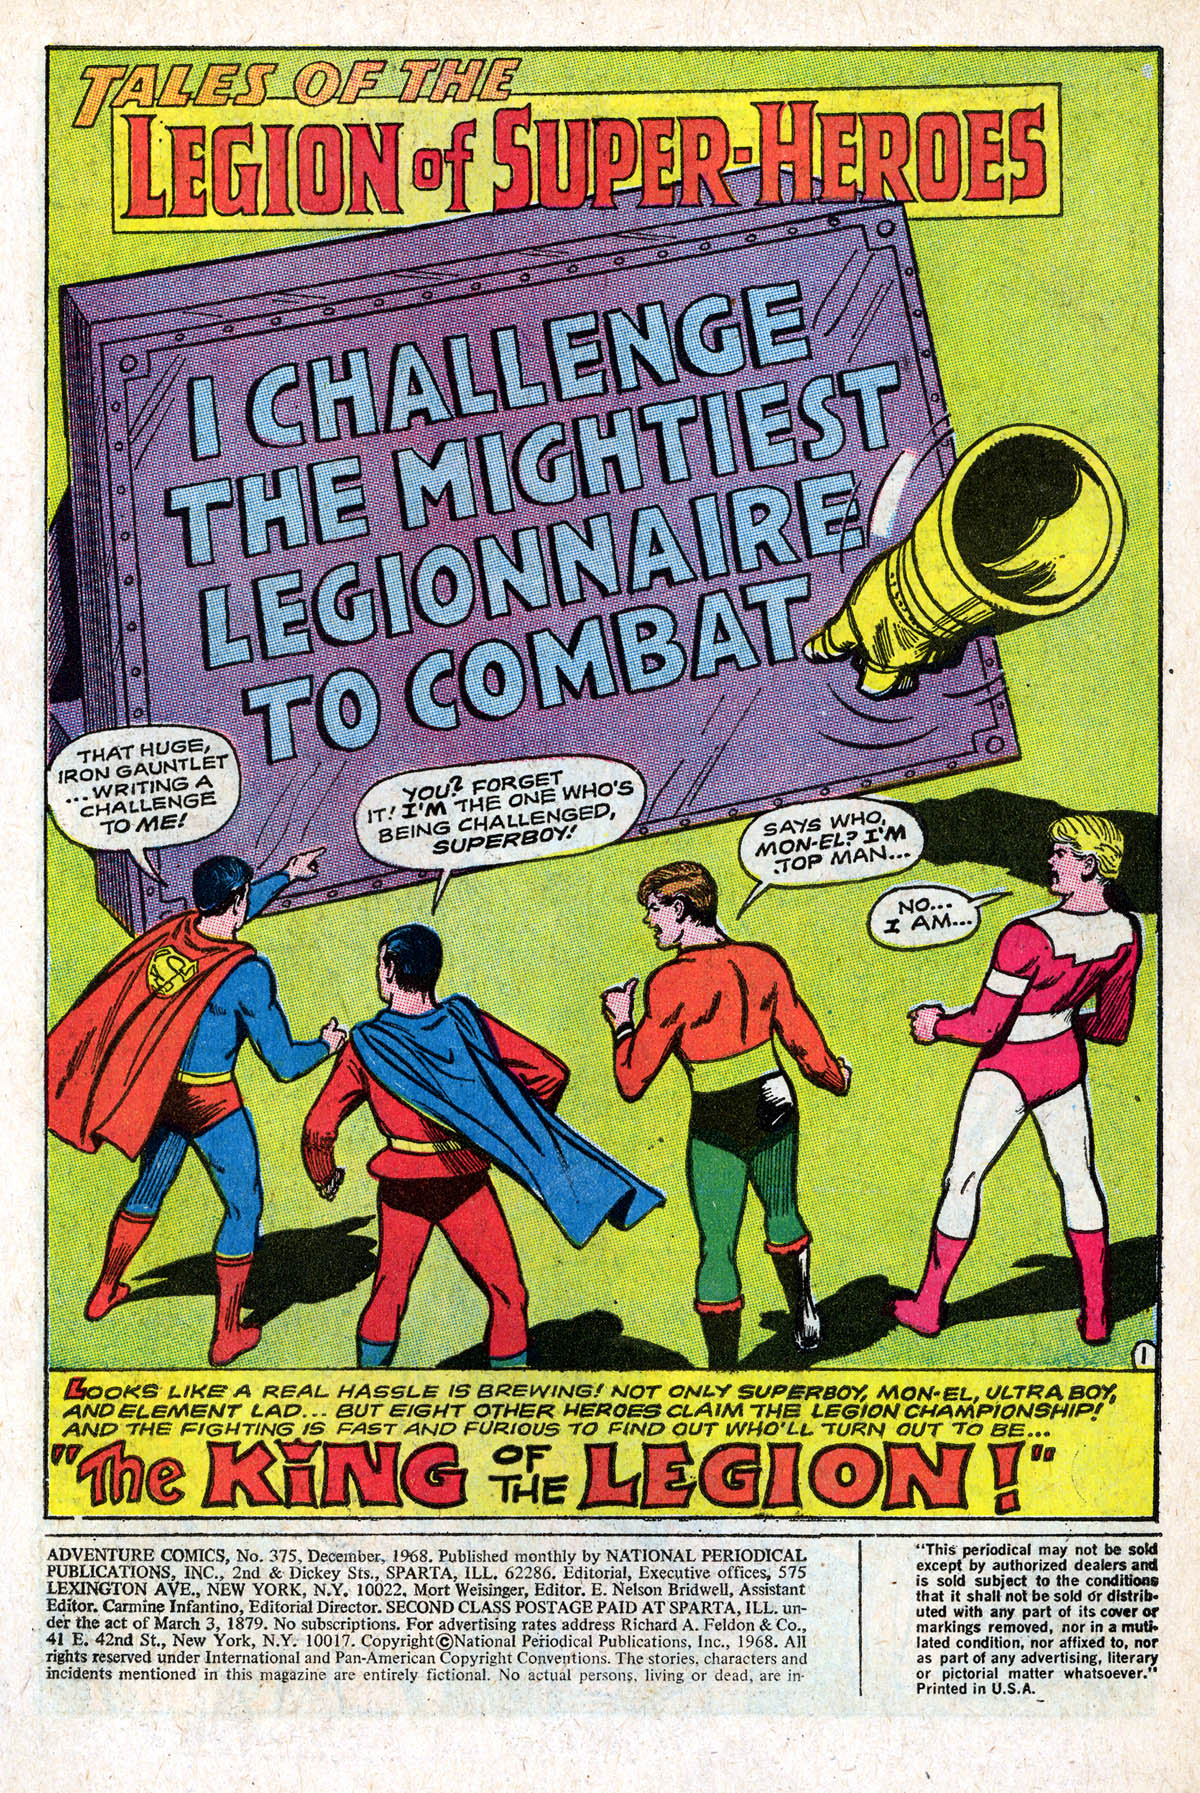 Read online Adventure Comics (1938) comic -  Issue #375 - 3